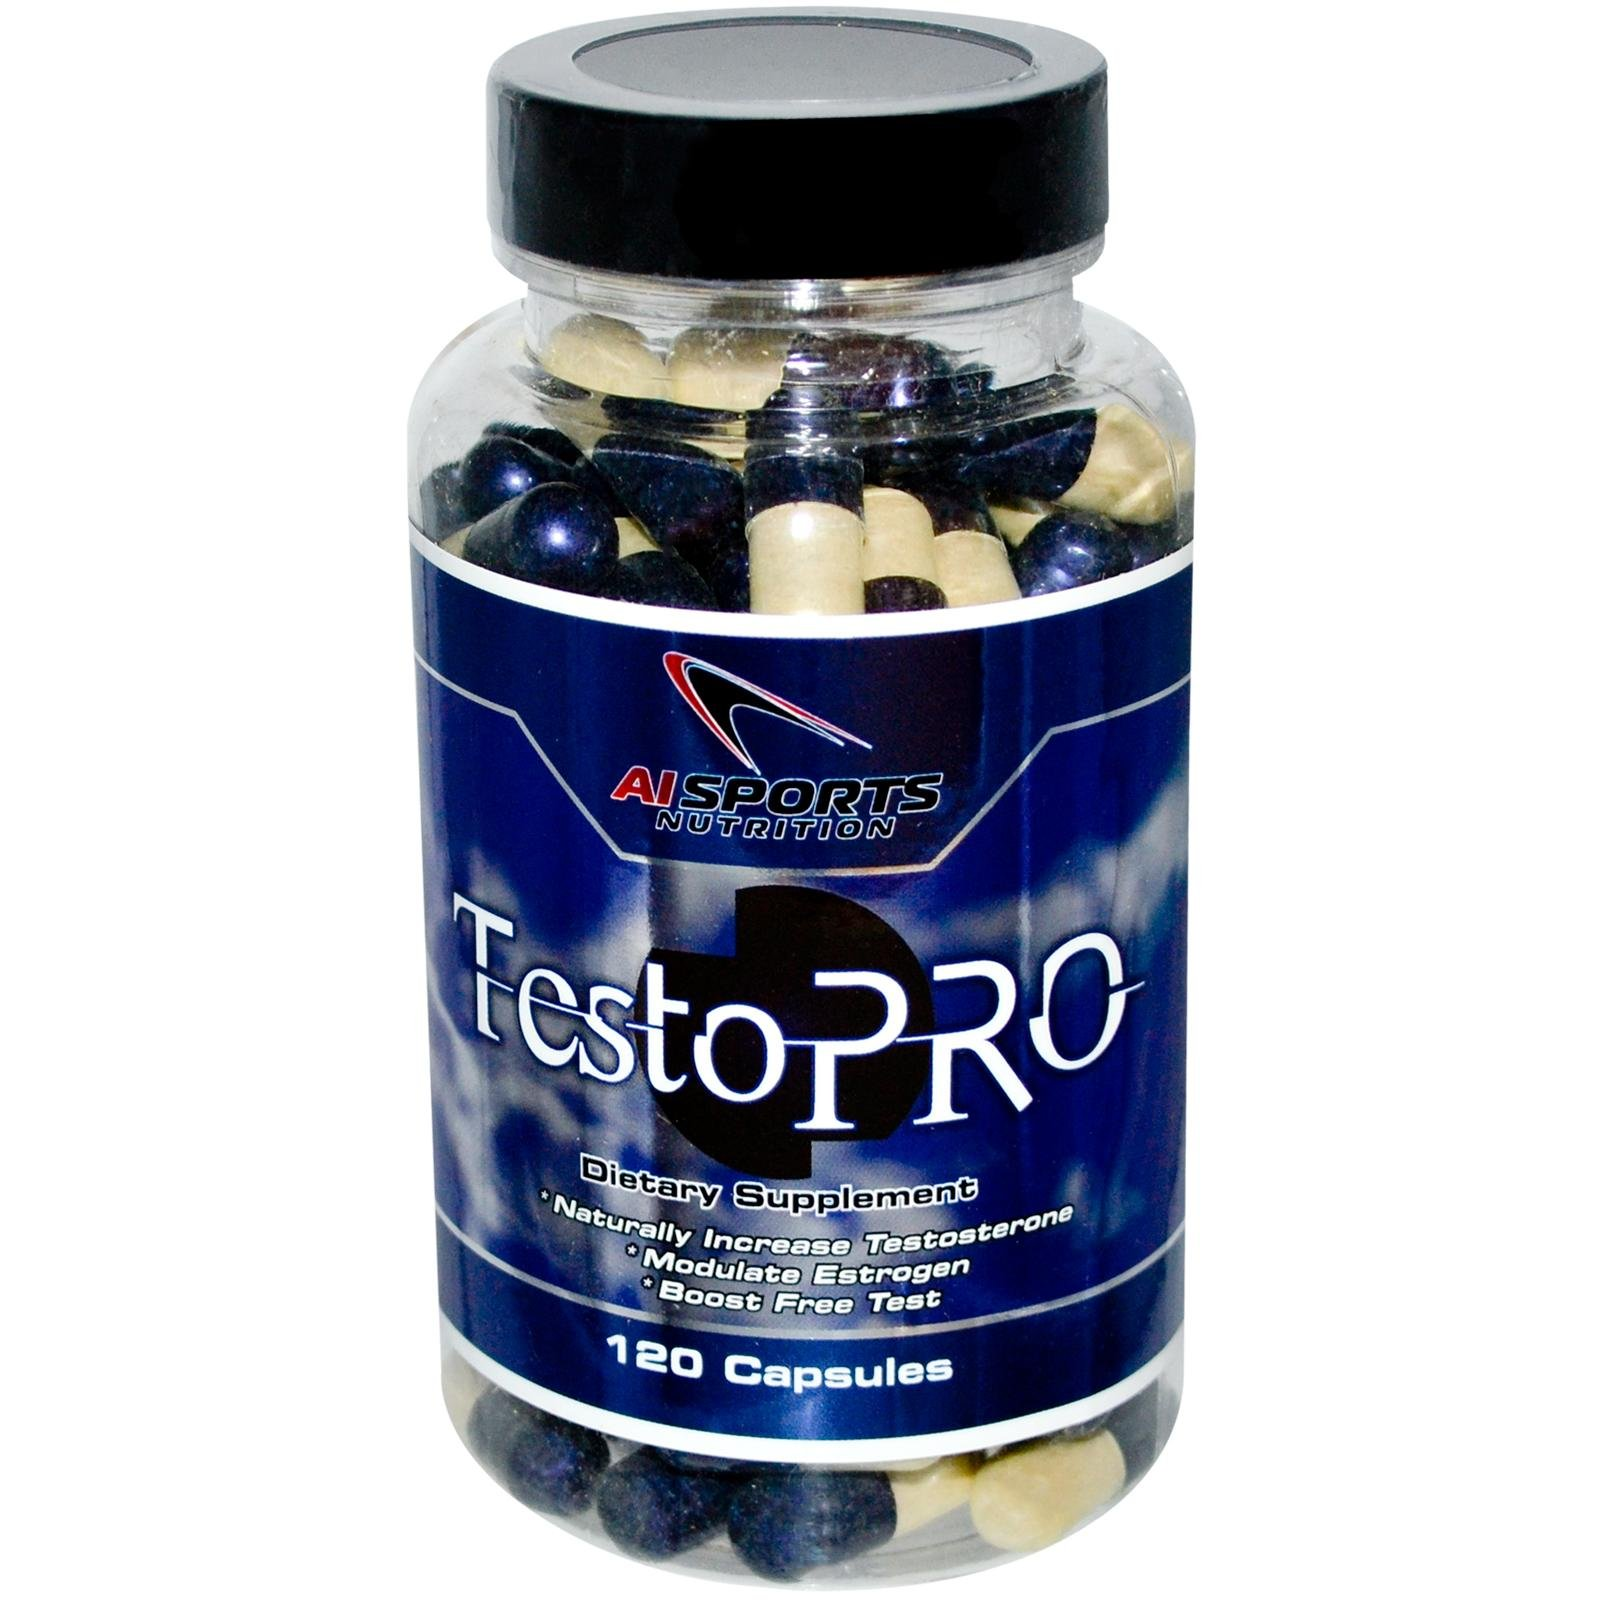 Anabolic Innovations Testopro Capsules, 120 Count